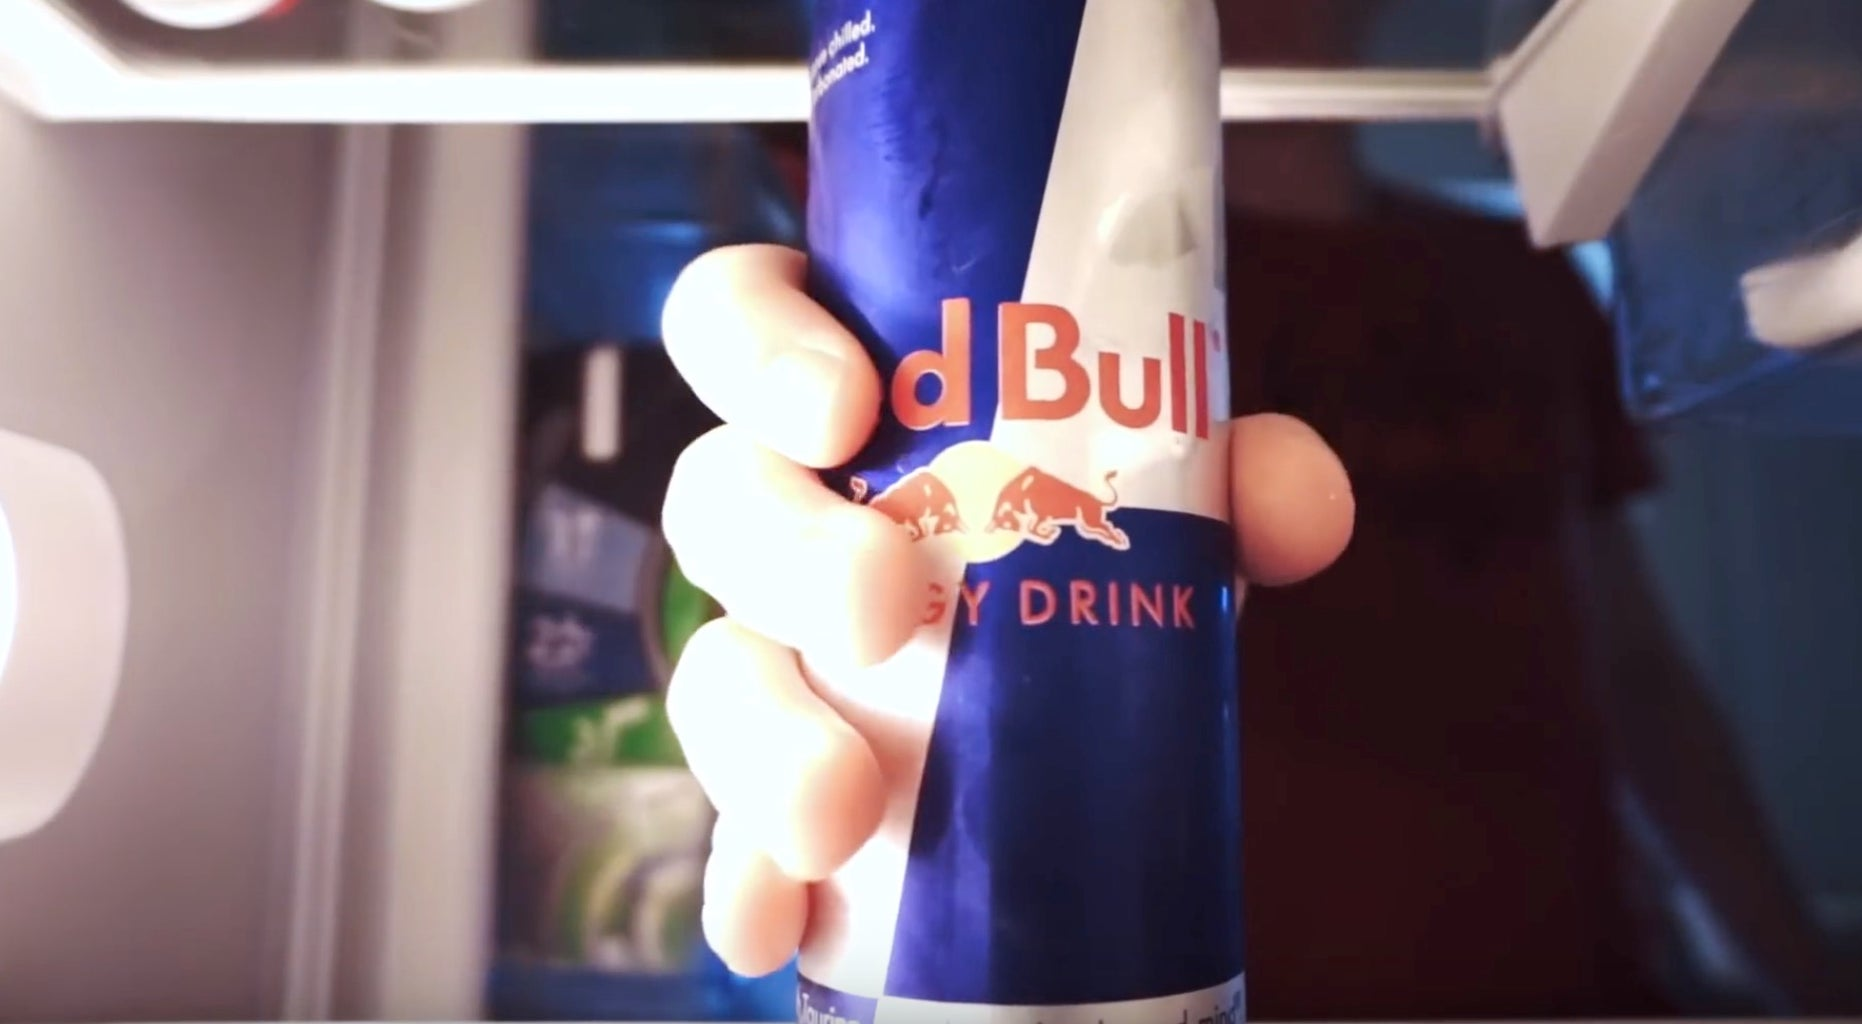 Step 1: Drink Red Bull